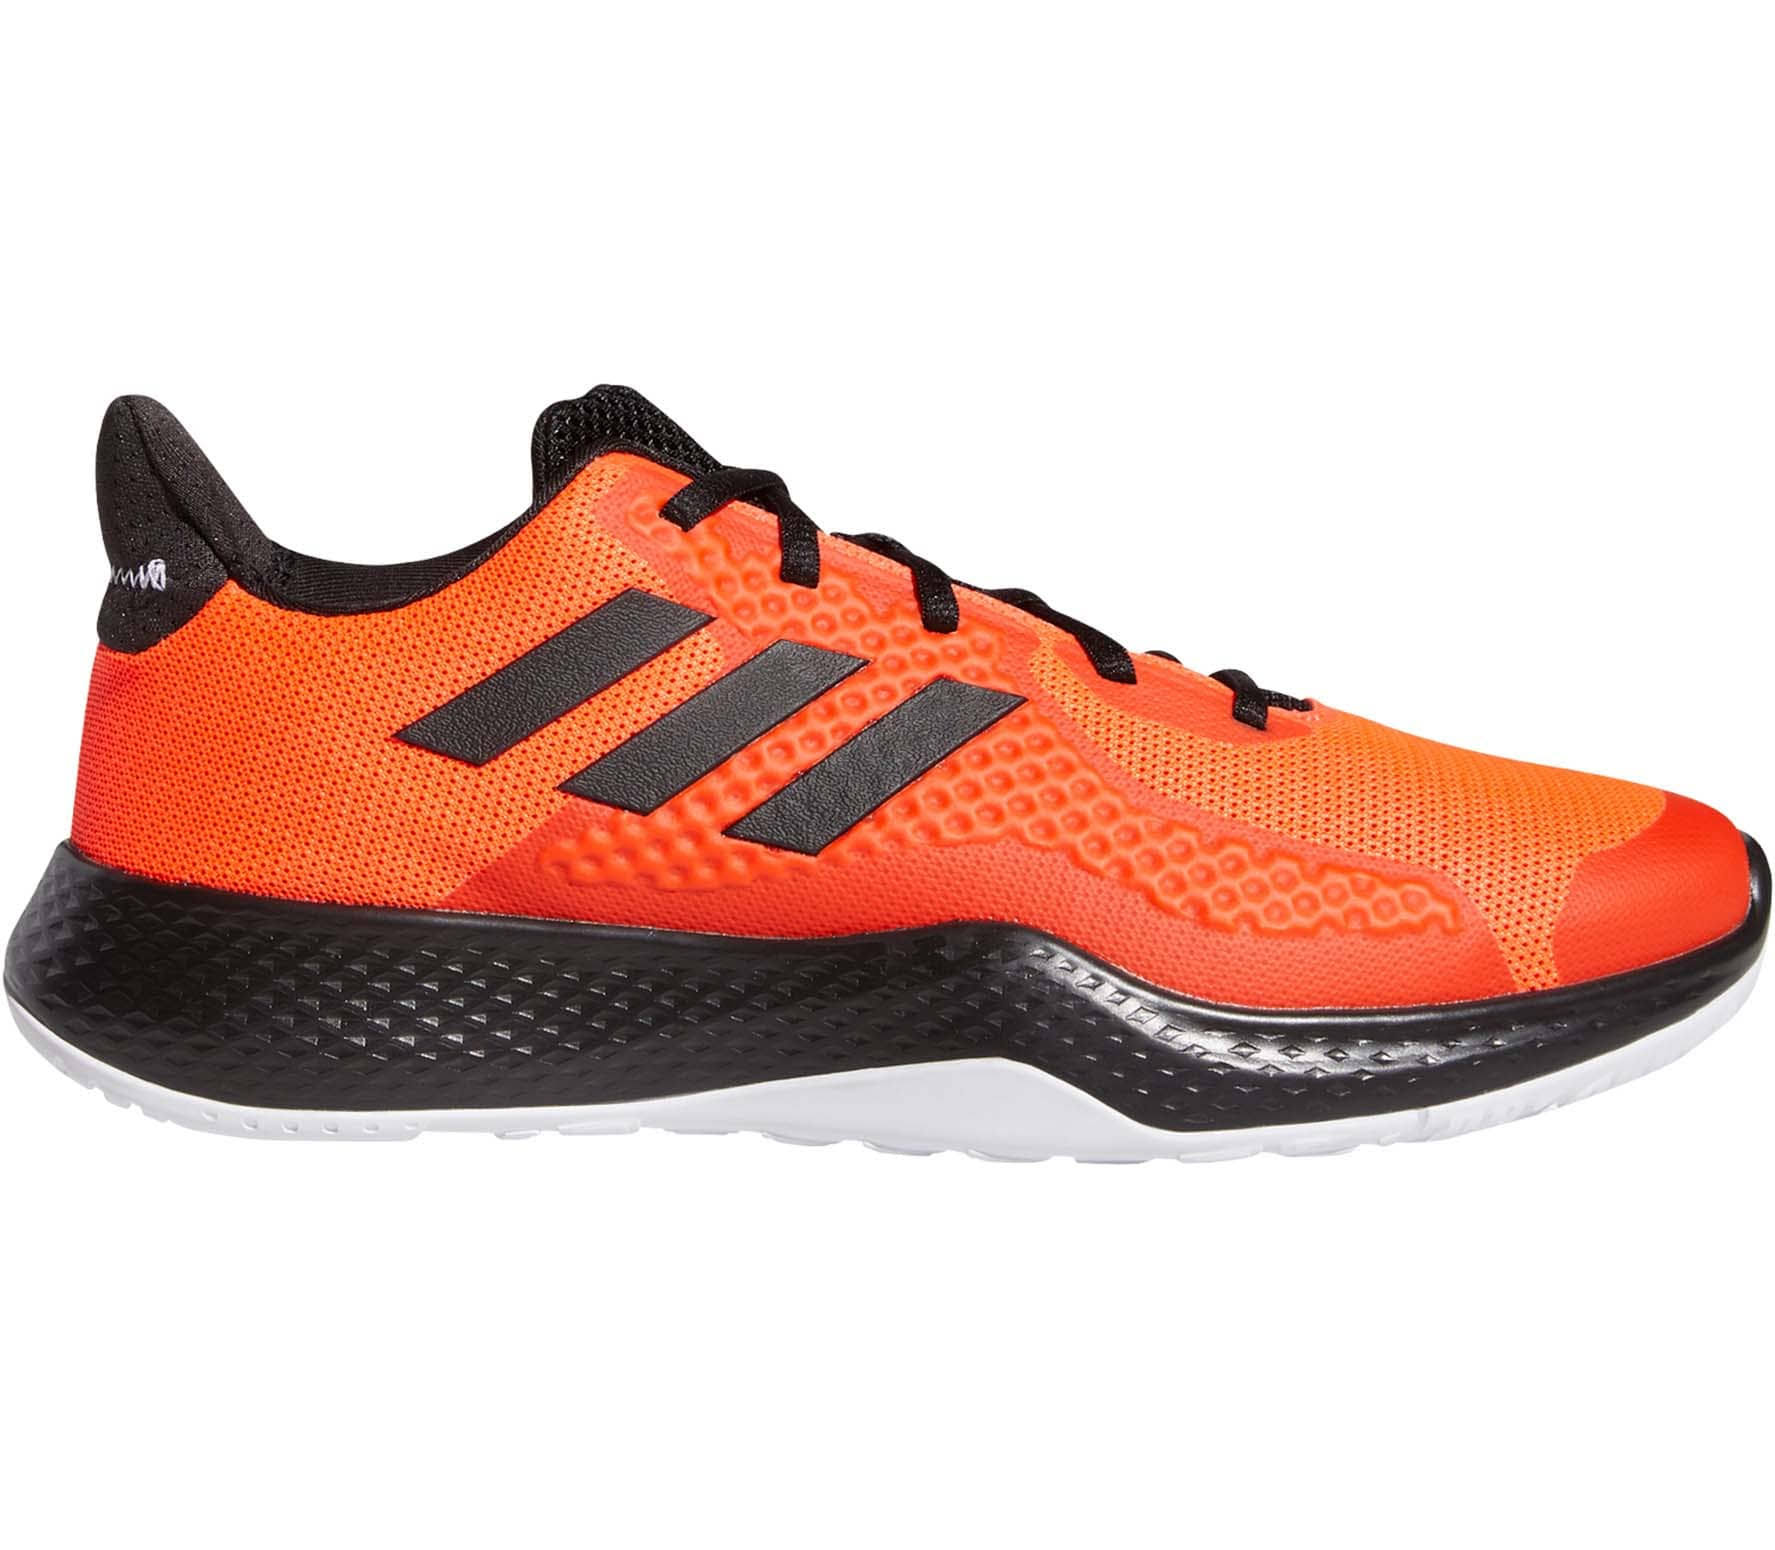 Adidas Fitbounce Men Training Shoes Red